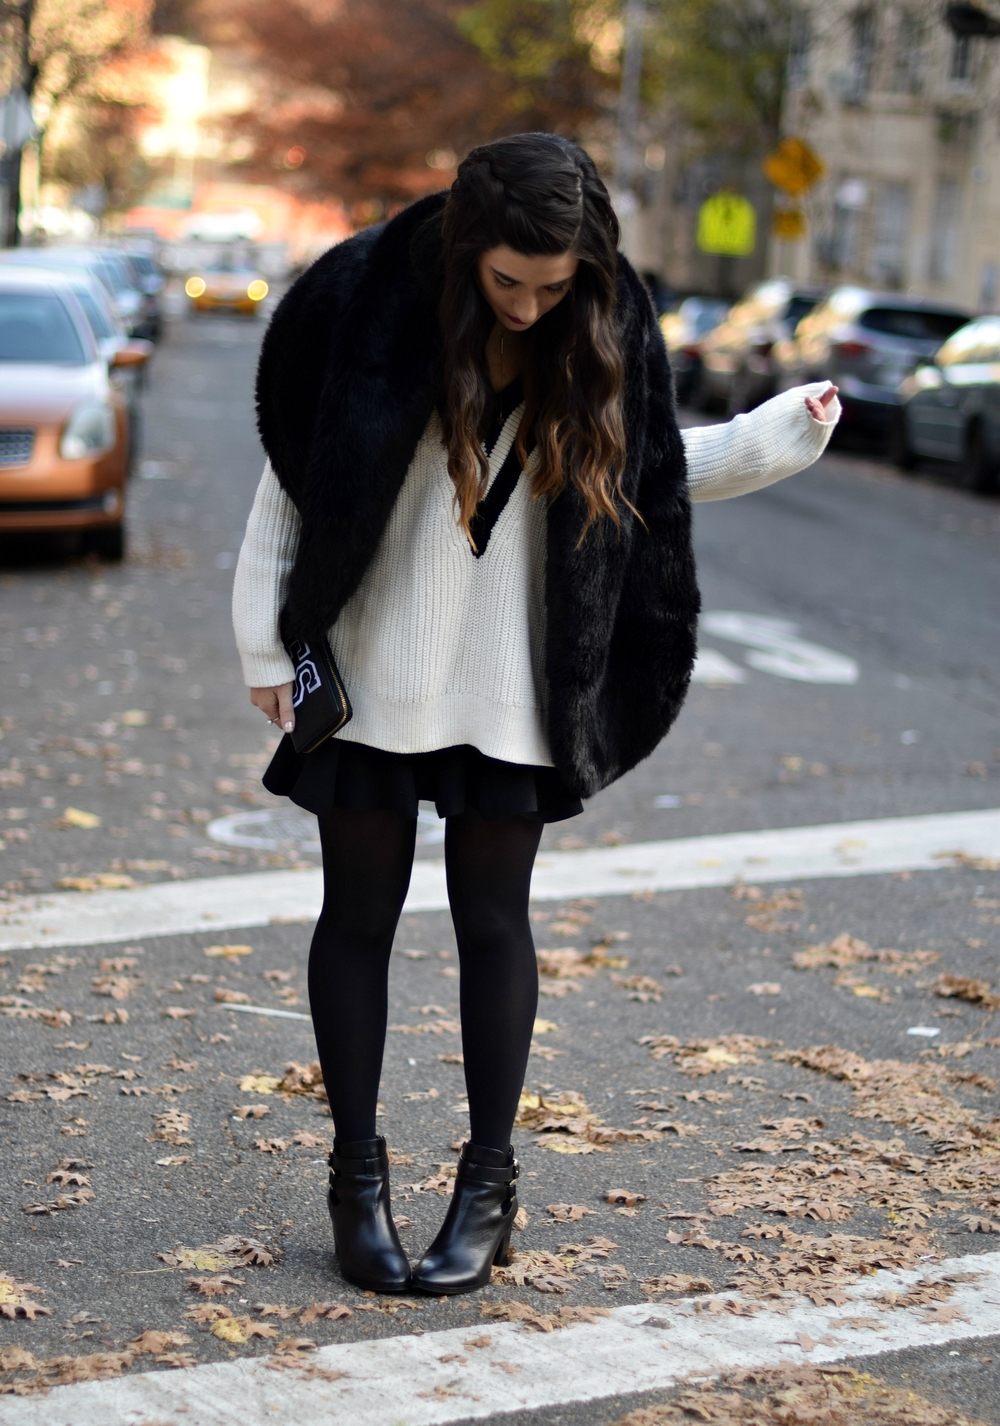 Chunky Varsity Knit Fur Stole Louboutins & Love Fashion Blog Esther Santer NYC Street Style Blogger Sweater Girl Women Photoshoot Model Shoes Black Booties Louise et Cie Nordstrom Hair Swag H&M Mini Skirt Neutrals OOTD Outfit Tights Winter Wear Shop.jpg